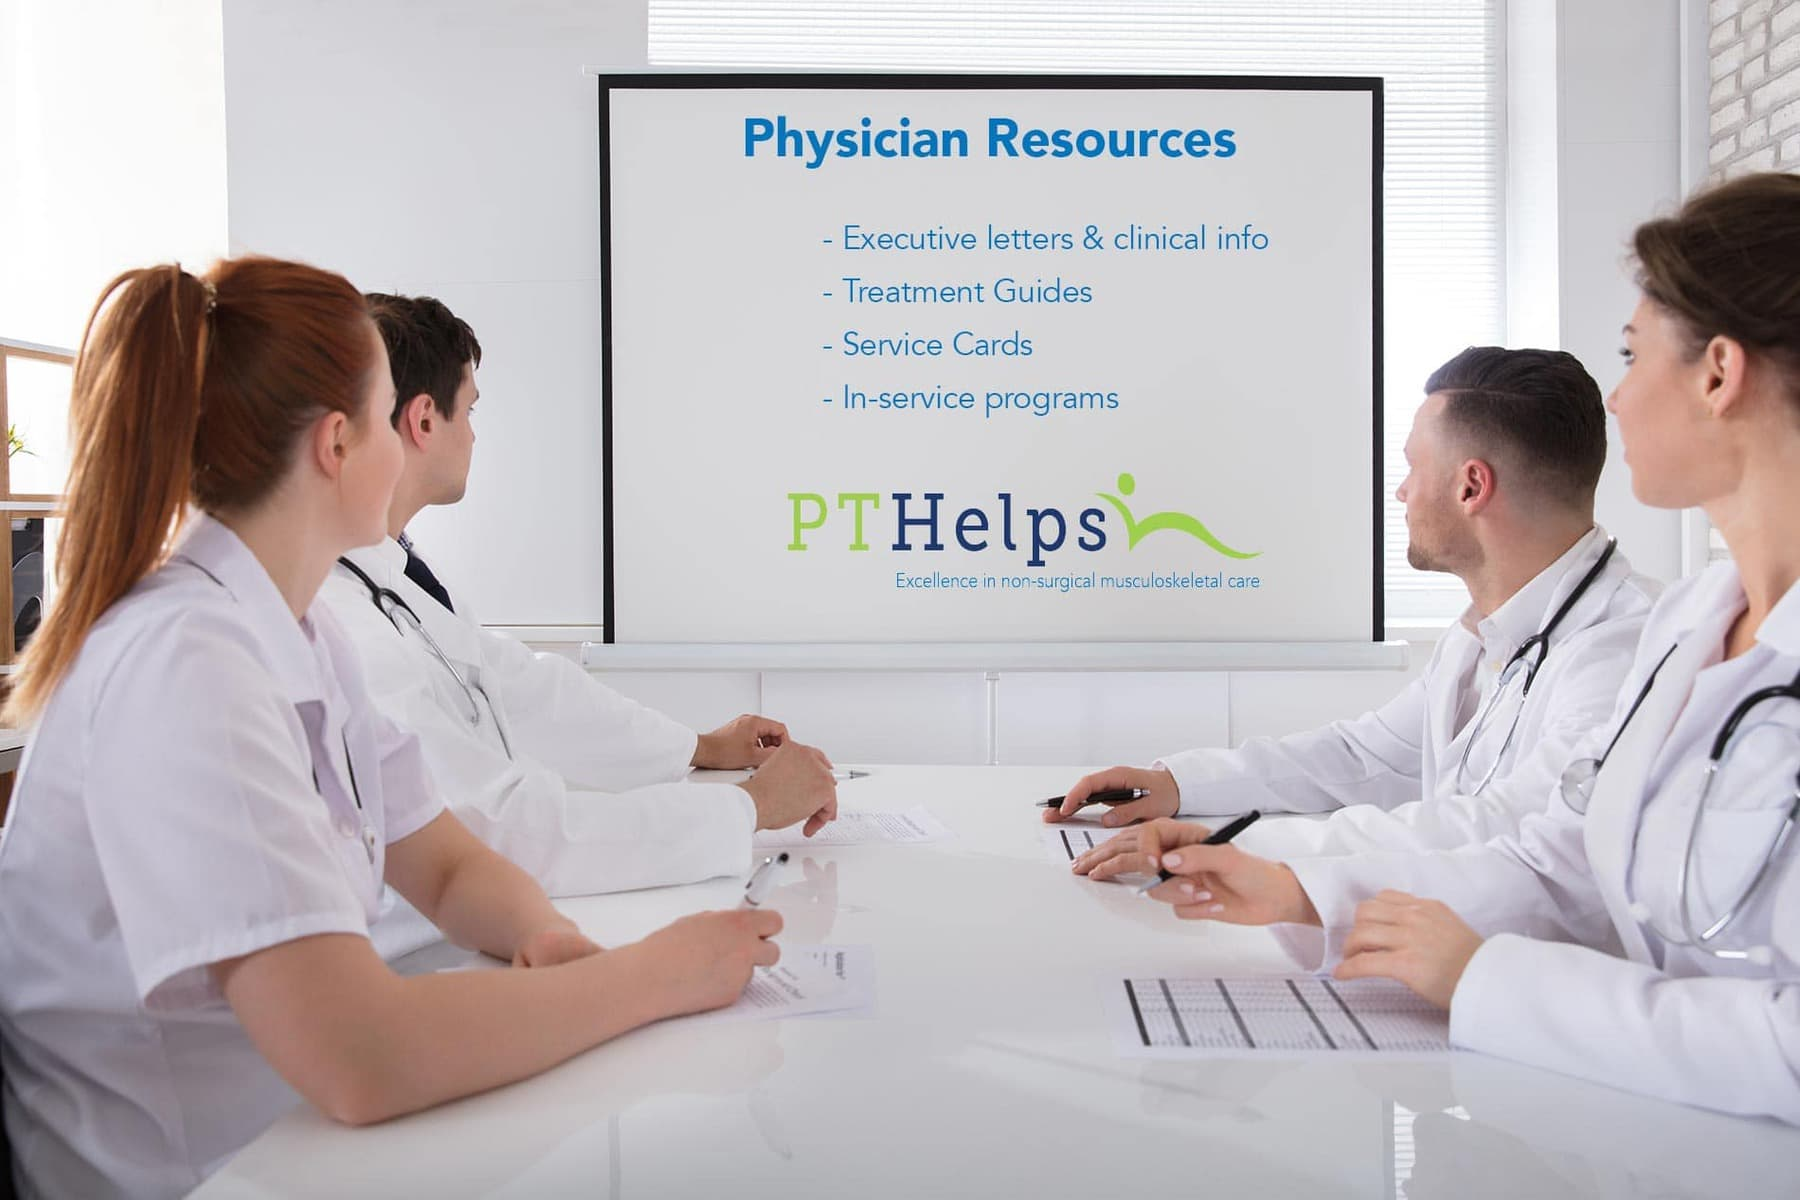 Physician Marketing for Physical Therapists - Event Feature image